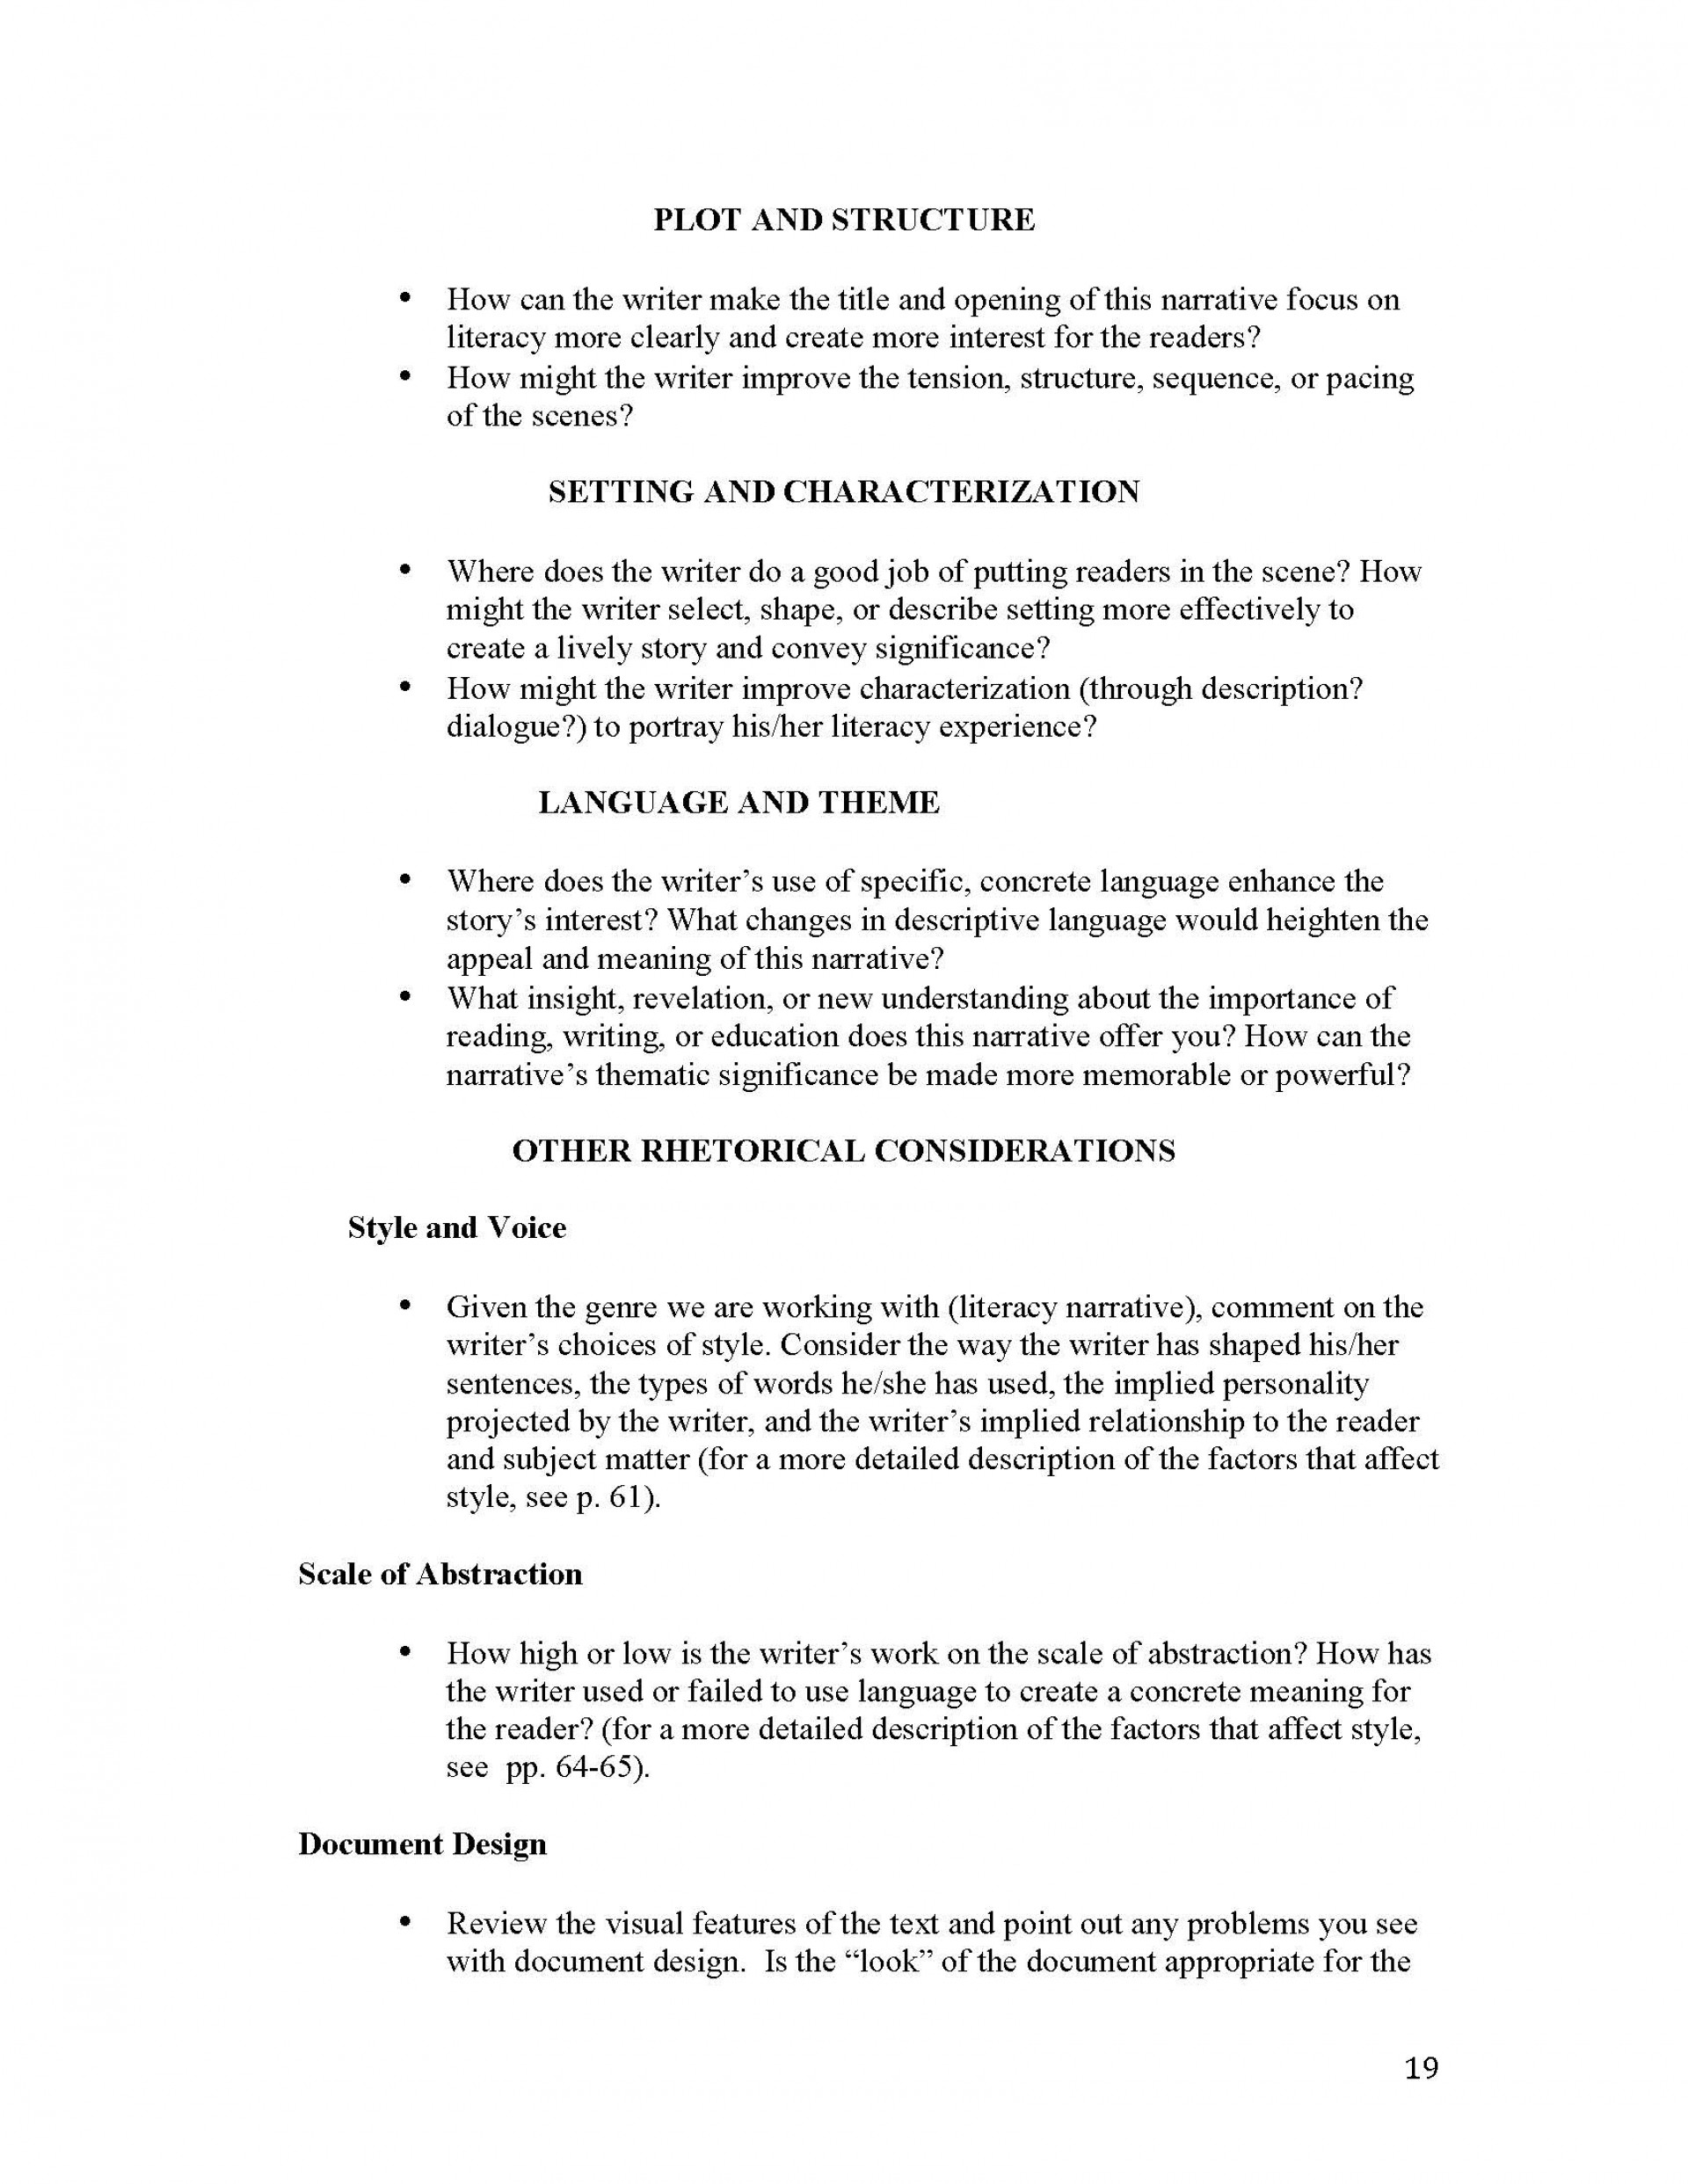 017 Essay Example Narrative Structure Unit 1 Literacy Instructor Copy Page 19 Surprising Pdf Examples College Personal High School 1920